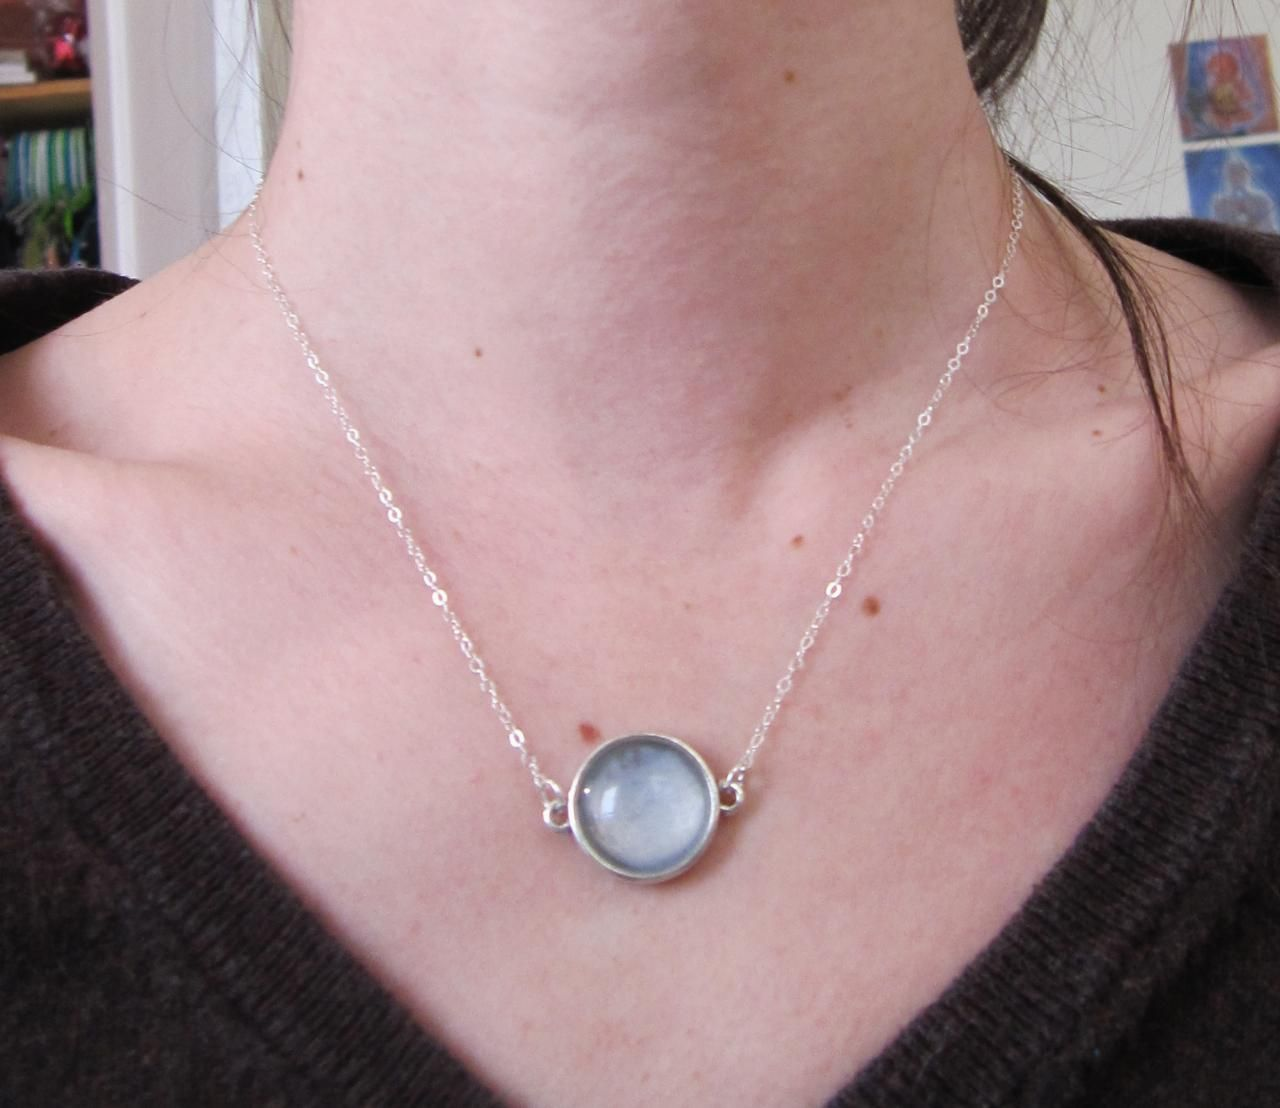 Small Lavender Circle Necklace Sterling Silver | Jewelry | Pinterest ...